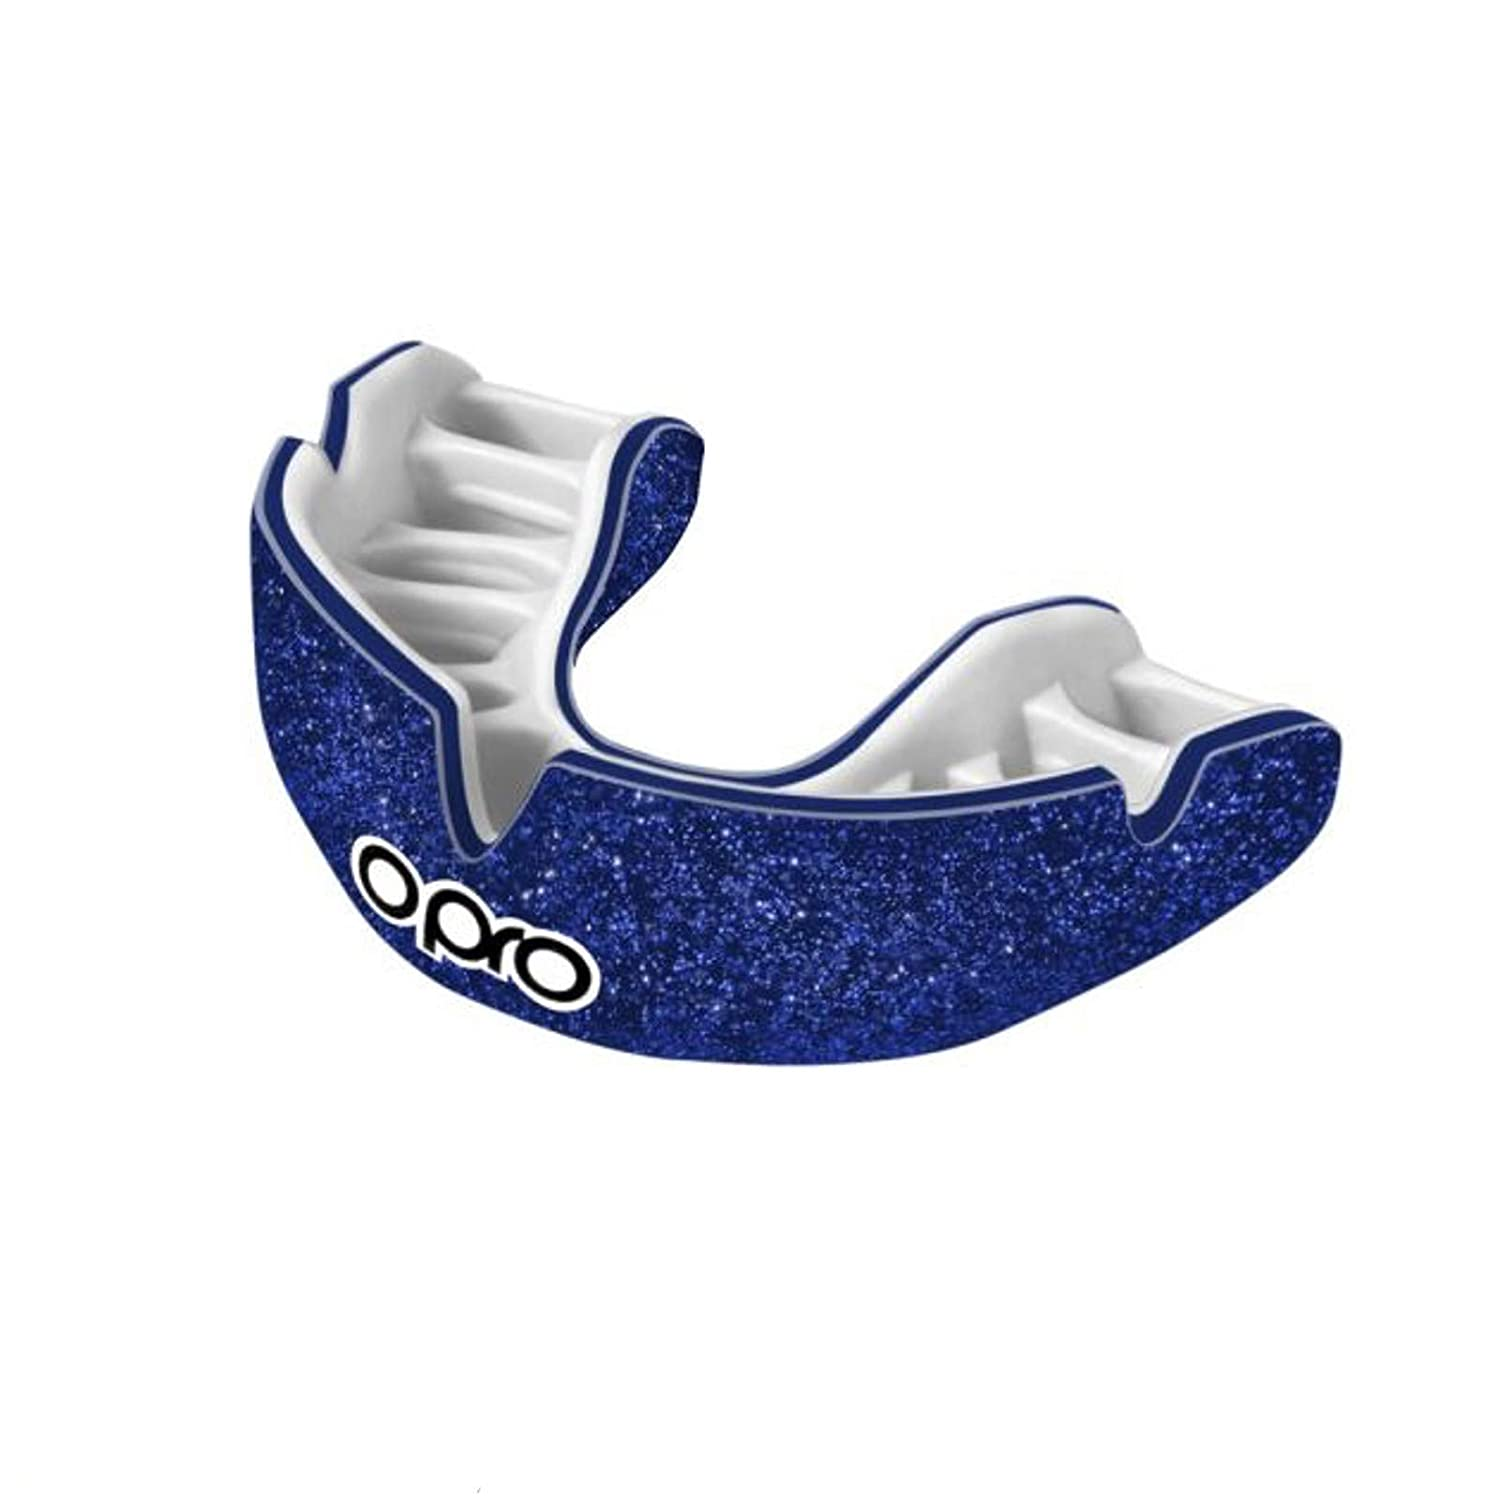 OPRO Power-Fit Mouthguard Galaxy Invasion